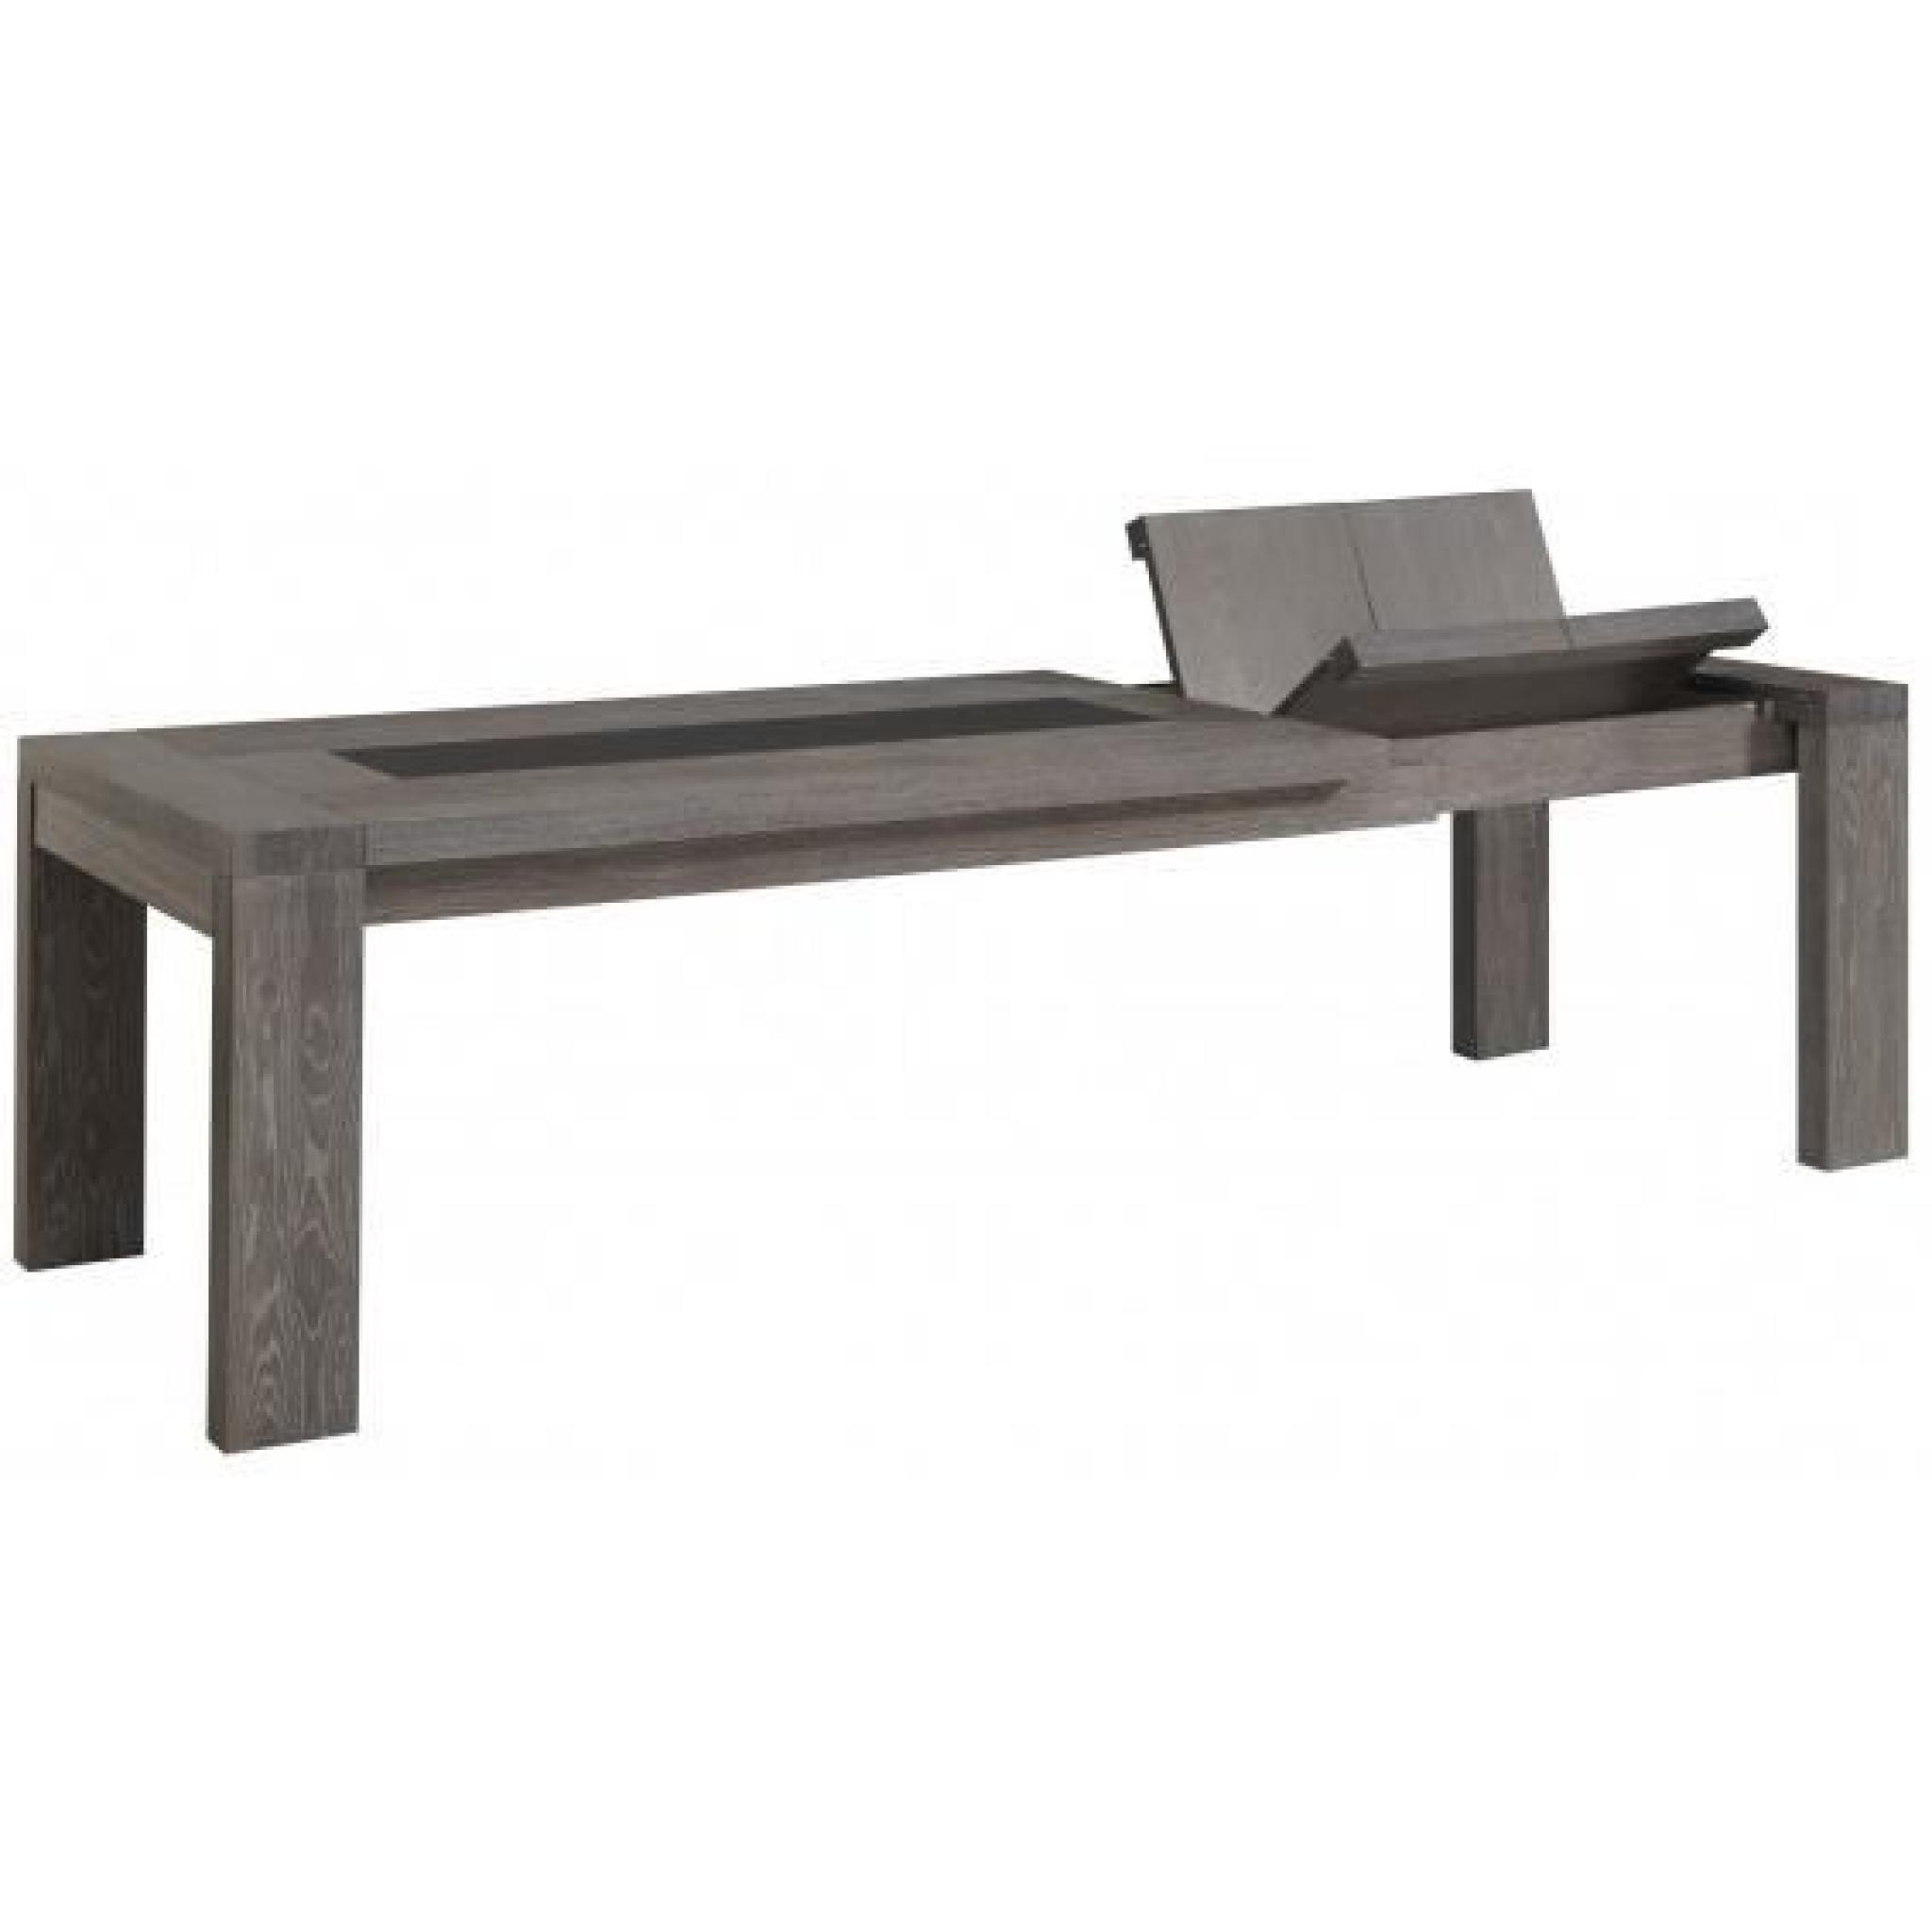 Dayton Table Rectangulaire Avec Allonges Achat Vente: table salle a manger rectangulaire extensible